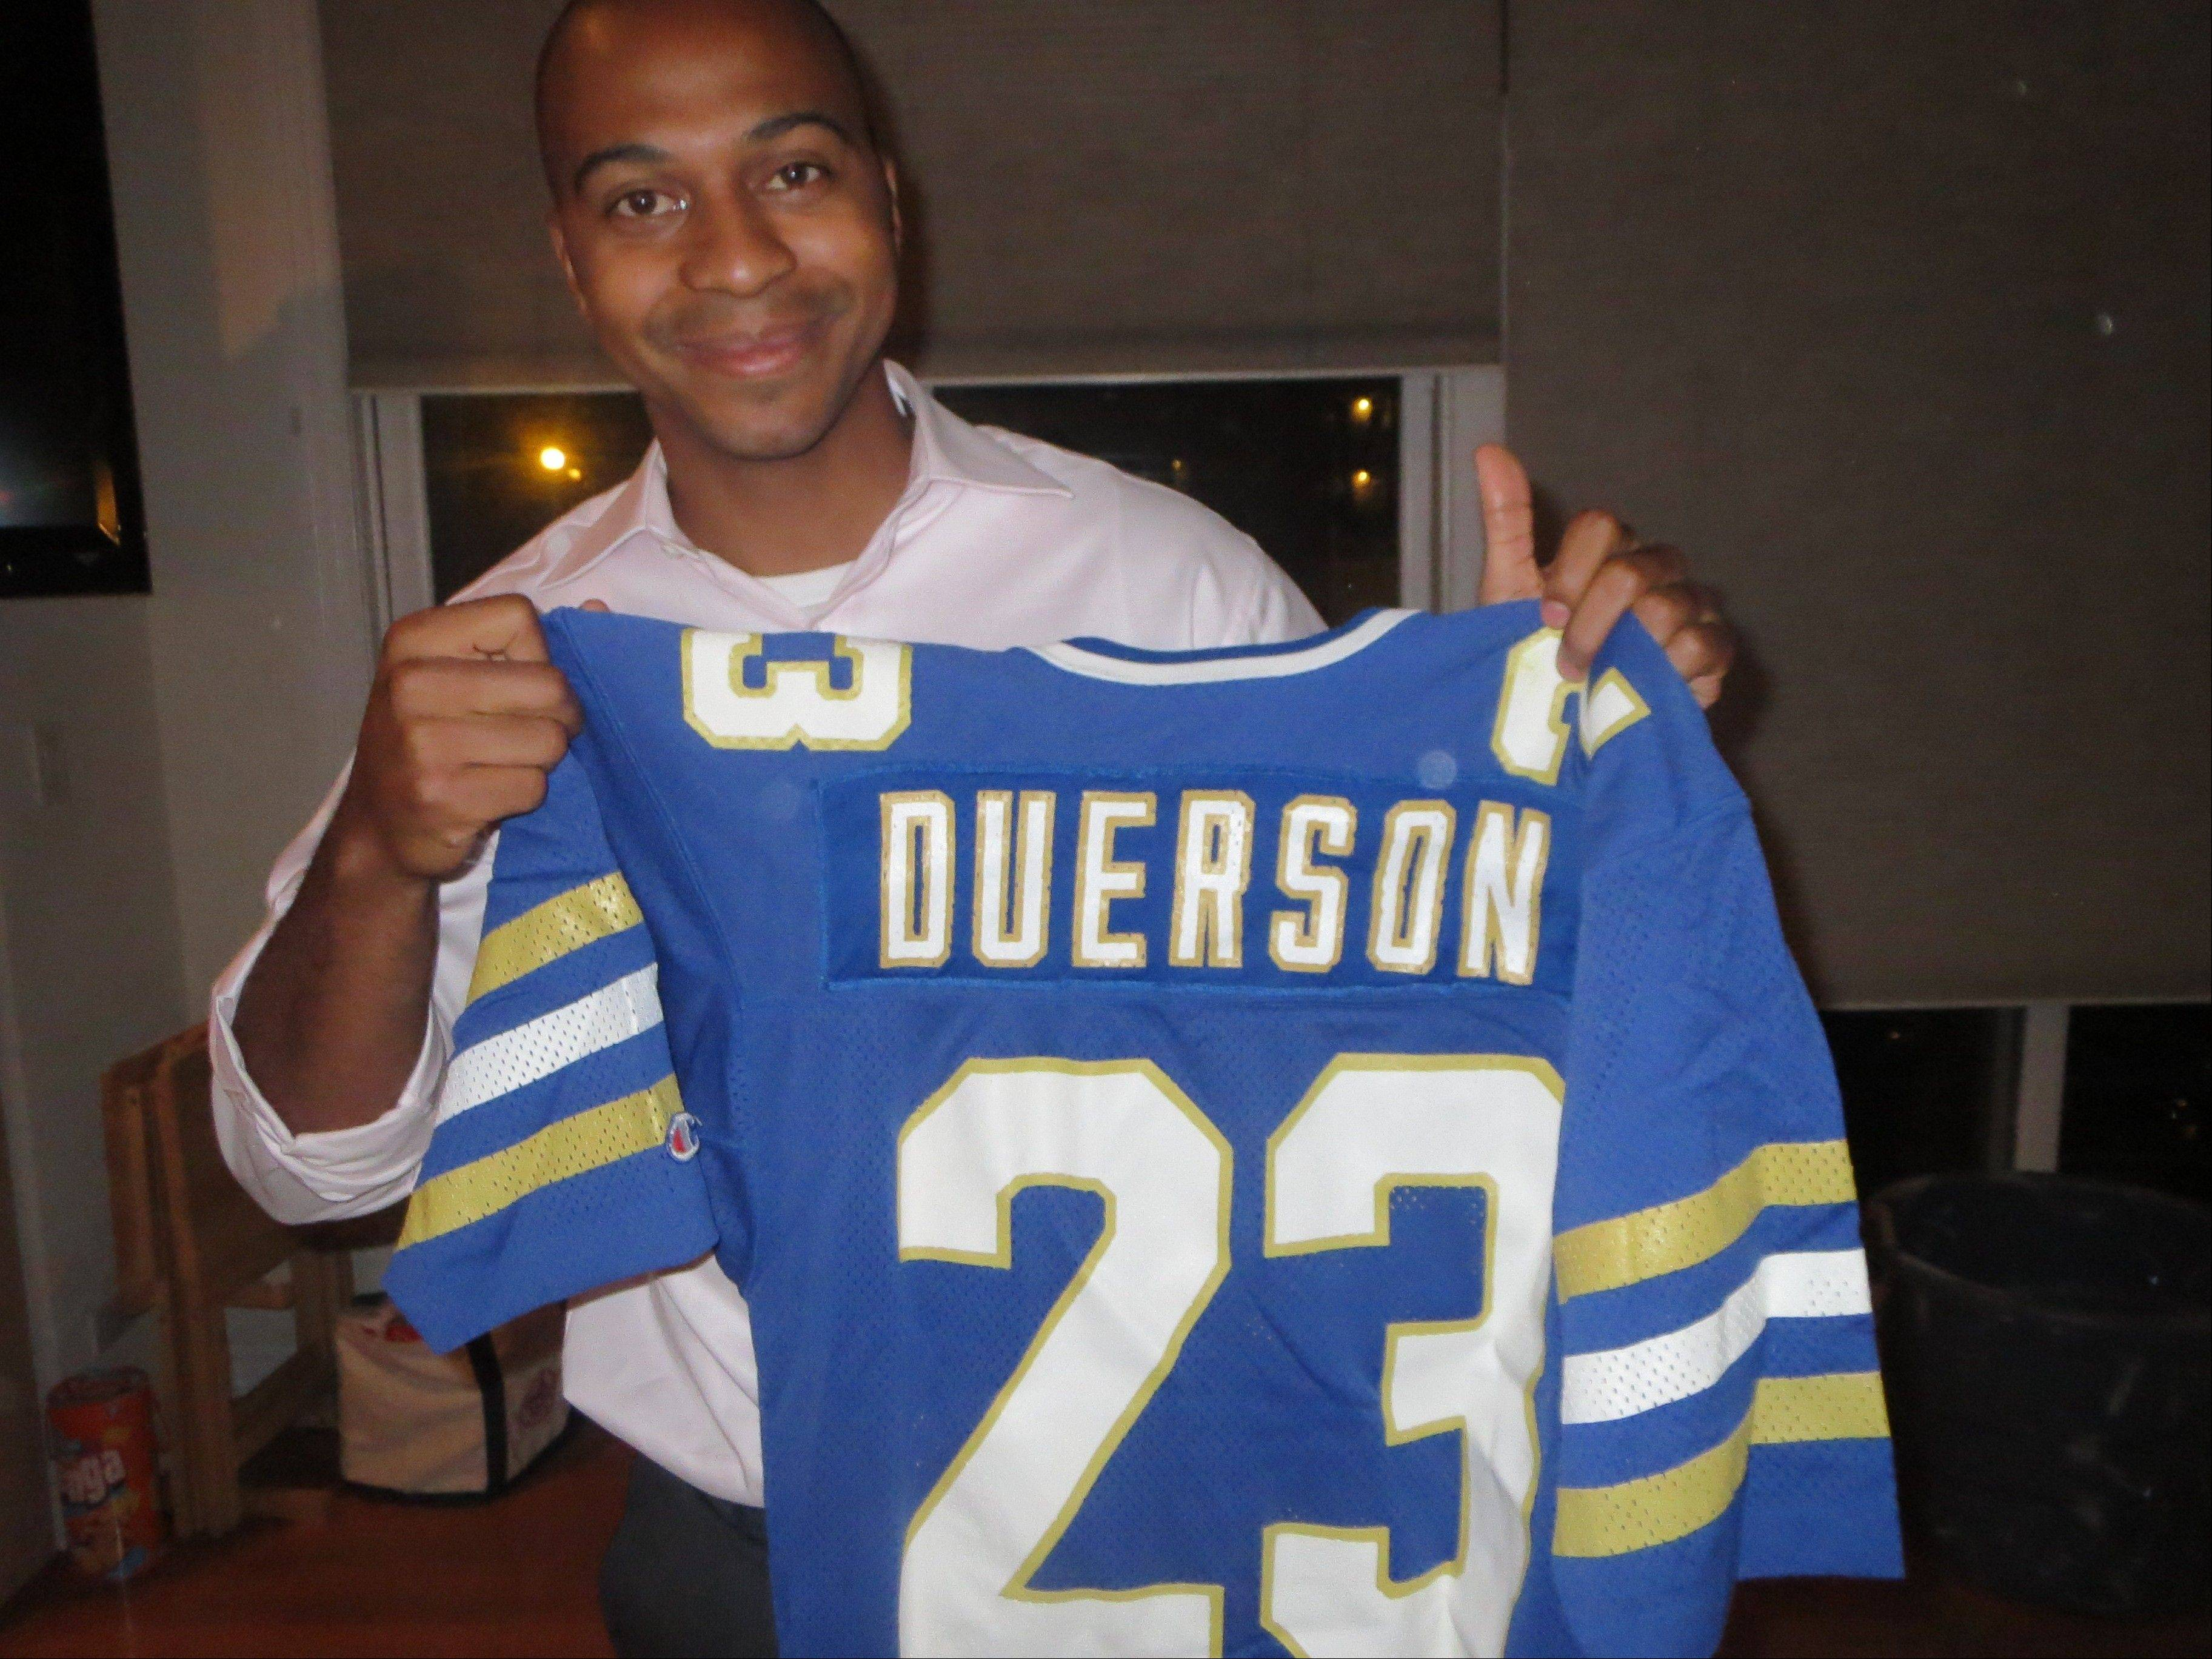 Wearing No. 23 in college, Dave Duerson was a star for the University of Notre Dame football team before switching to No. 22 and becoming an All-Pro safety with the Chicago Bears. Son Tregg Duerson started his college football career at Notre Dame, but notes that he didn't blossom as a student until he gave up football.